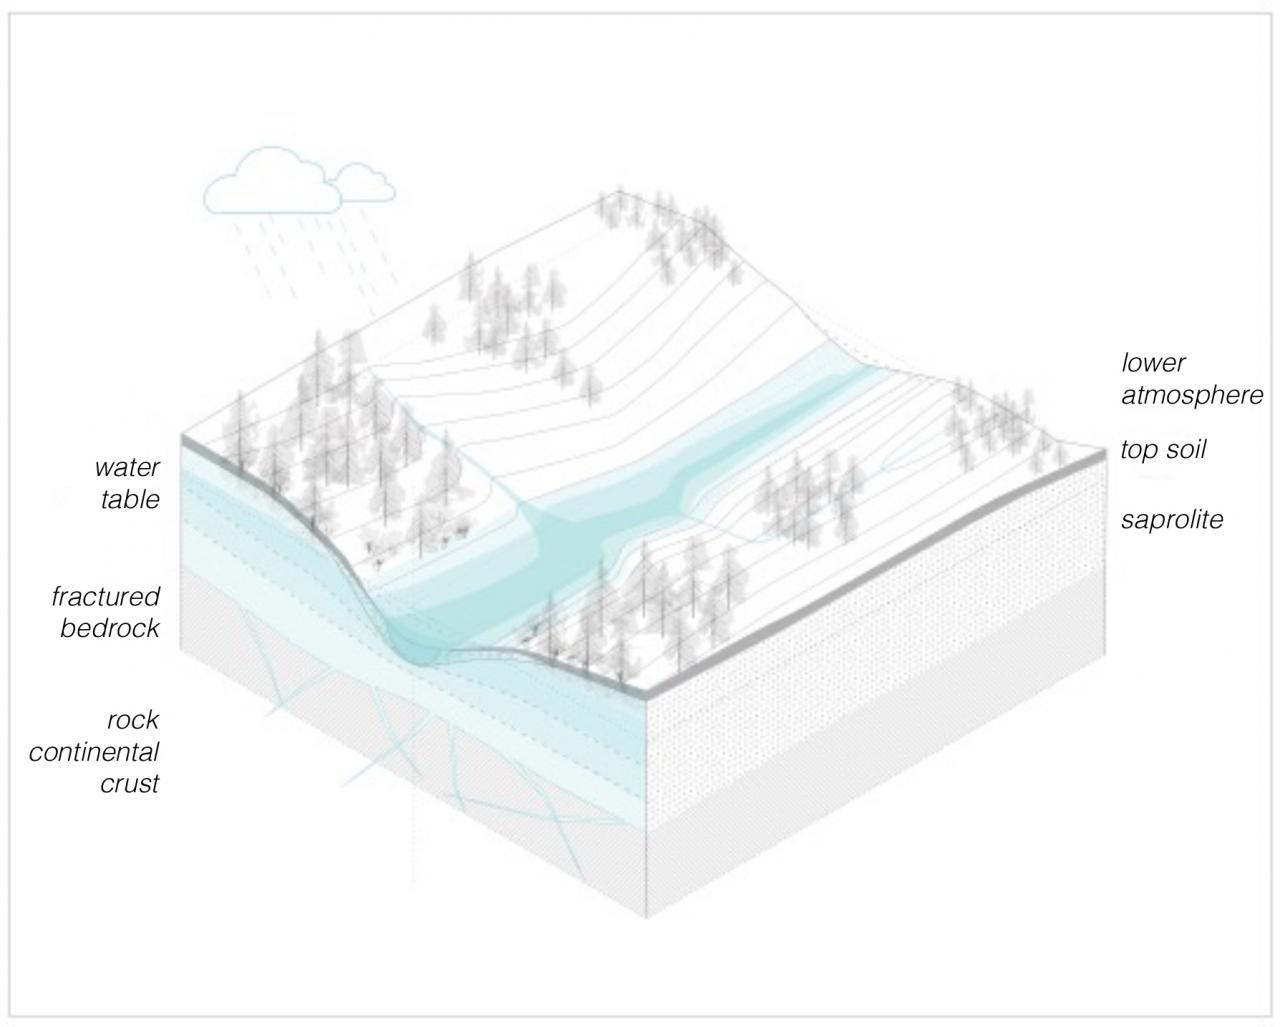 Graphic to visualize the critical zone in the geosciences.